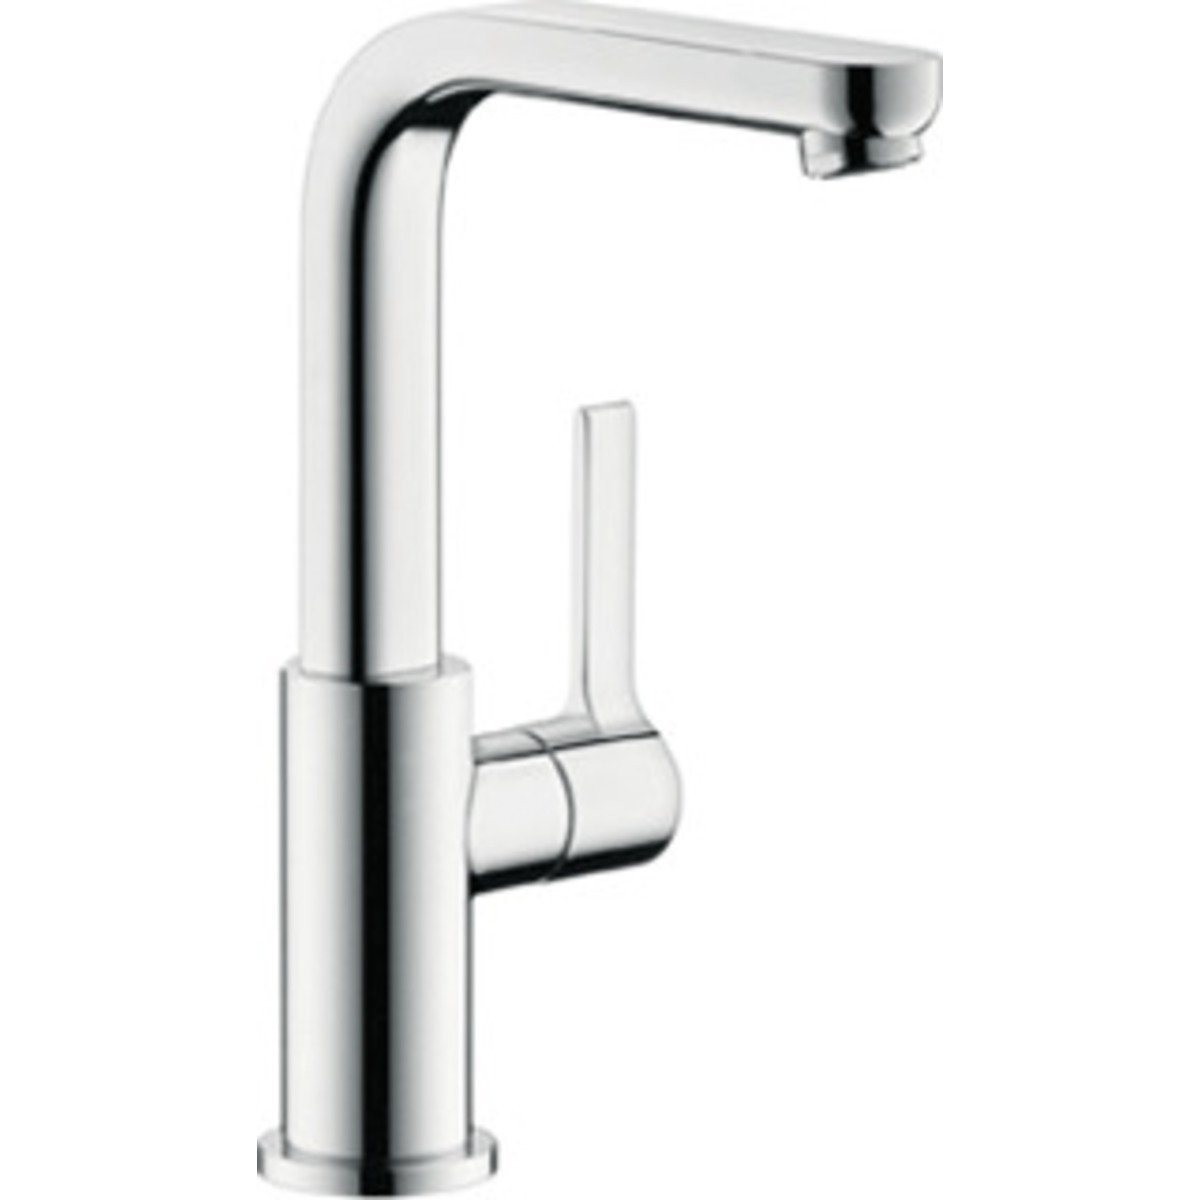 hansgrohe metris s robinet pour lavabo avec bec tournant rehauss avec bonde clic clac chrome. Black Bedroom Furniture Sets. Home Design Ideas